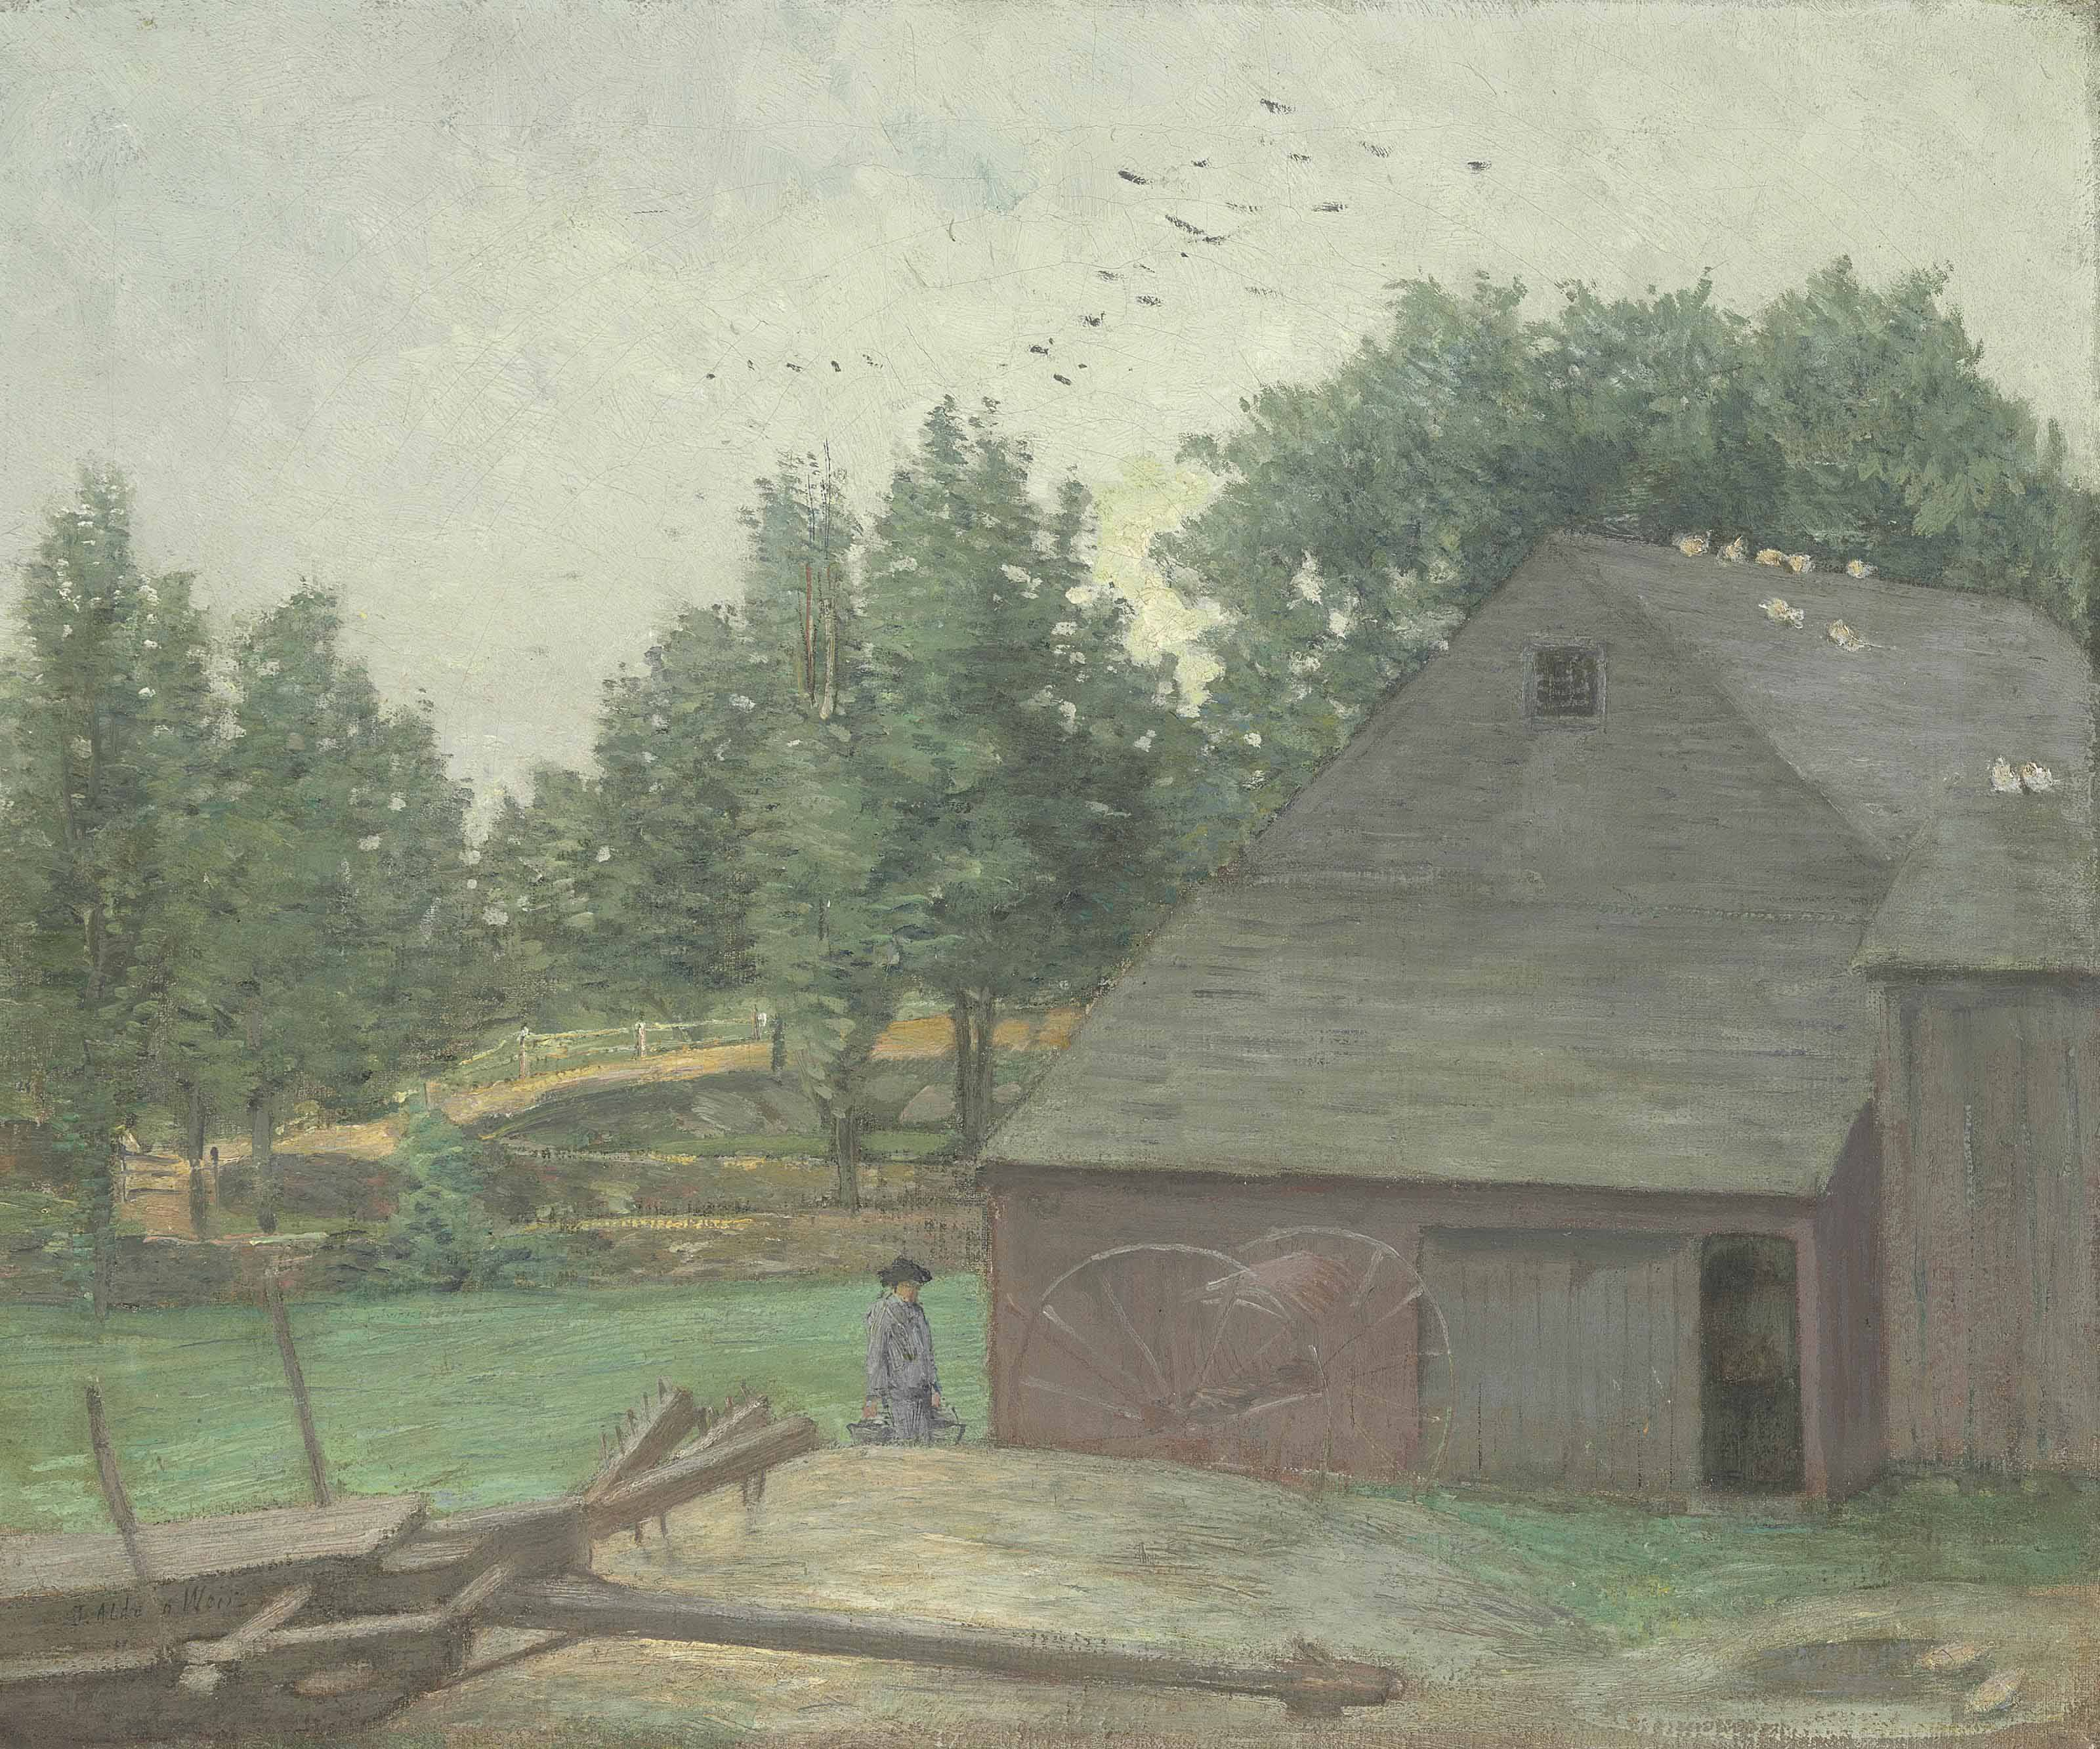 Summer in Connecticut--The Old Barn at Branchville